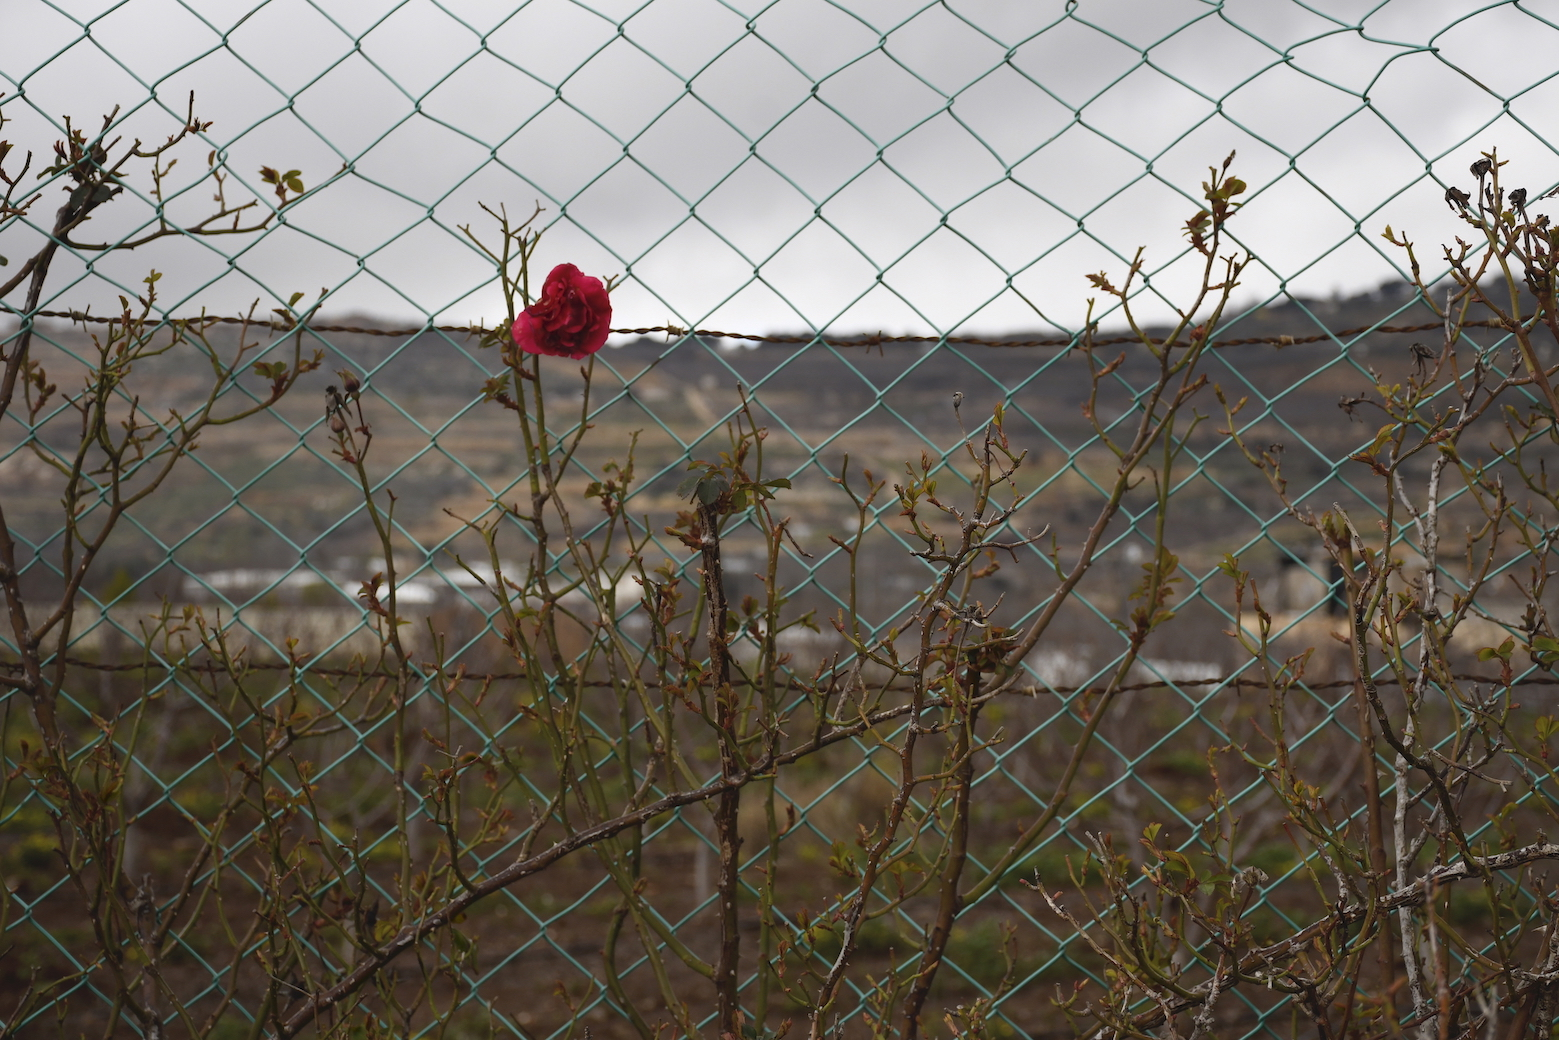 Photo of a rose growing through a wire fence